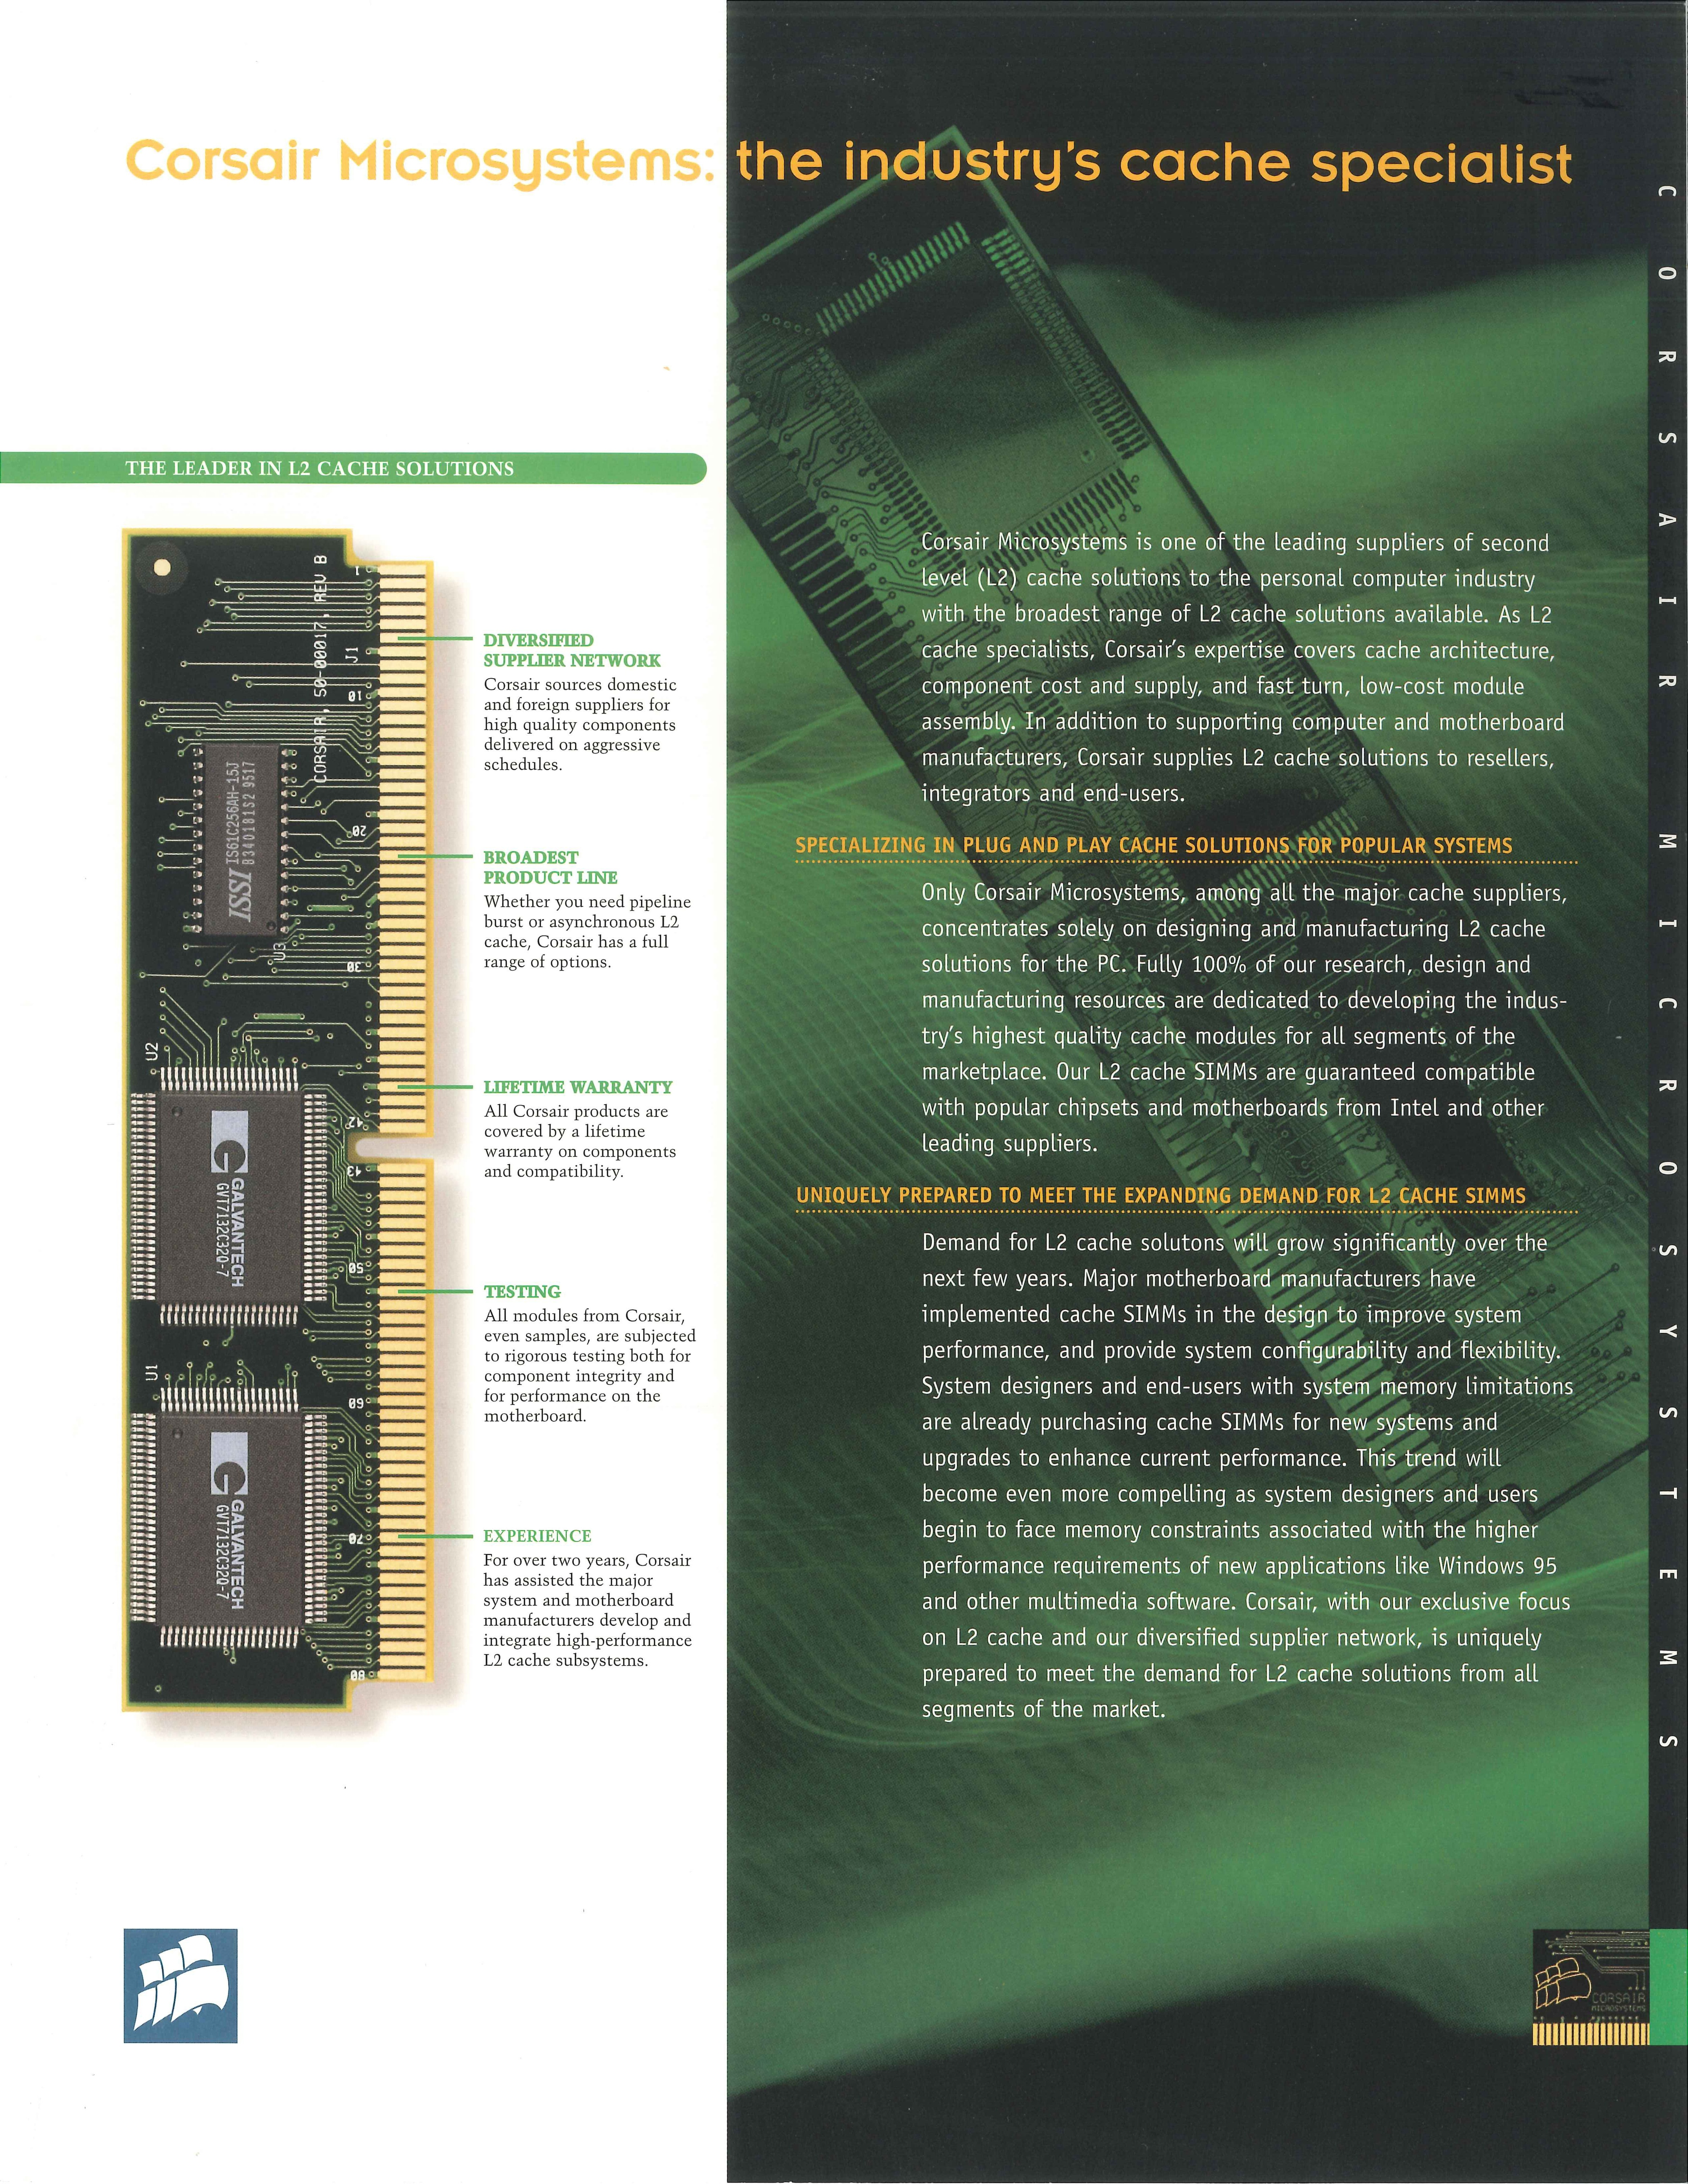 What is a motherboard made of?